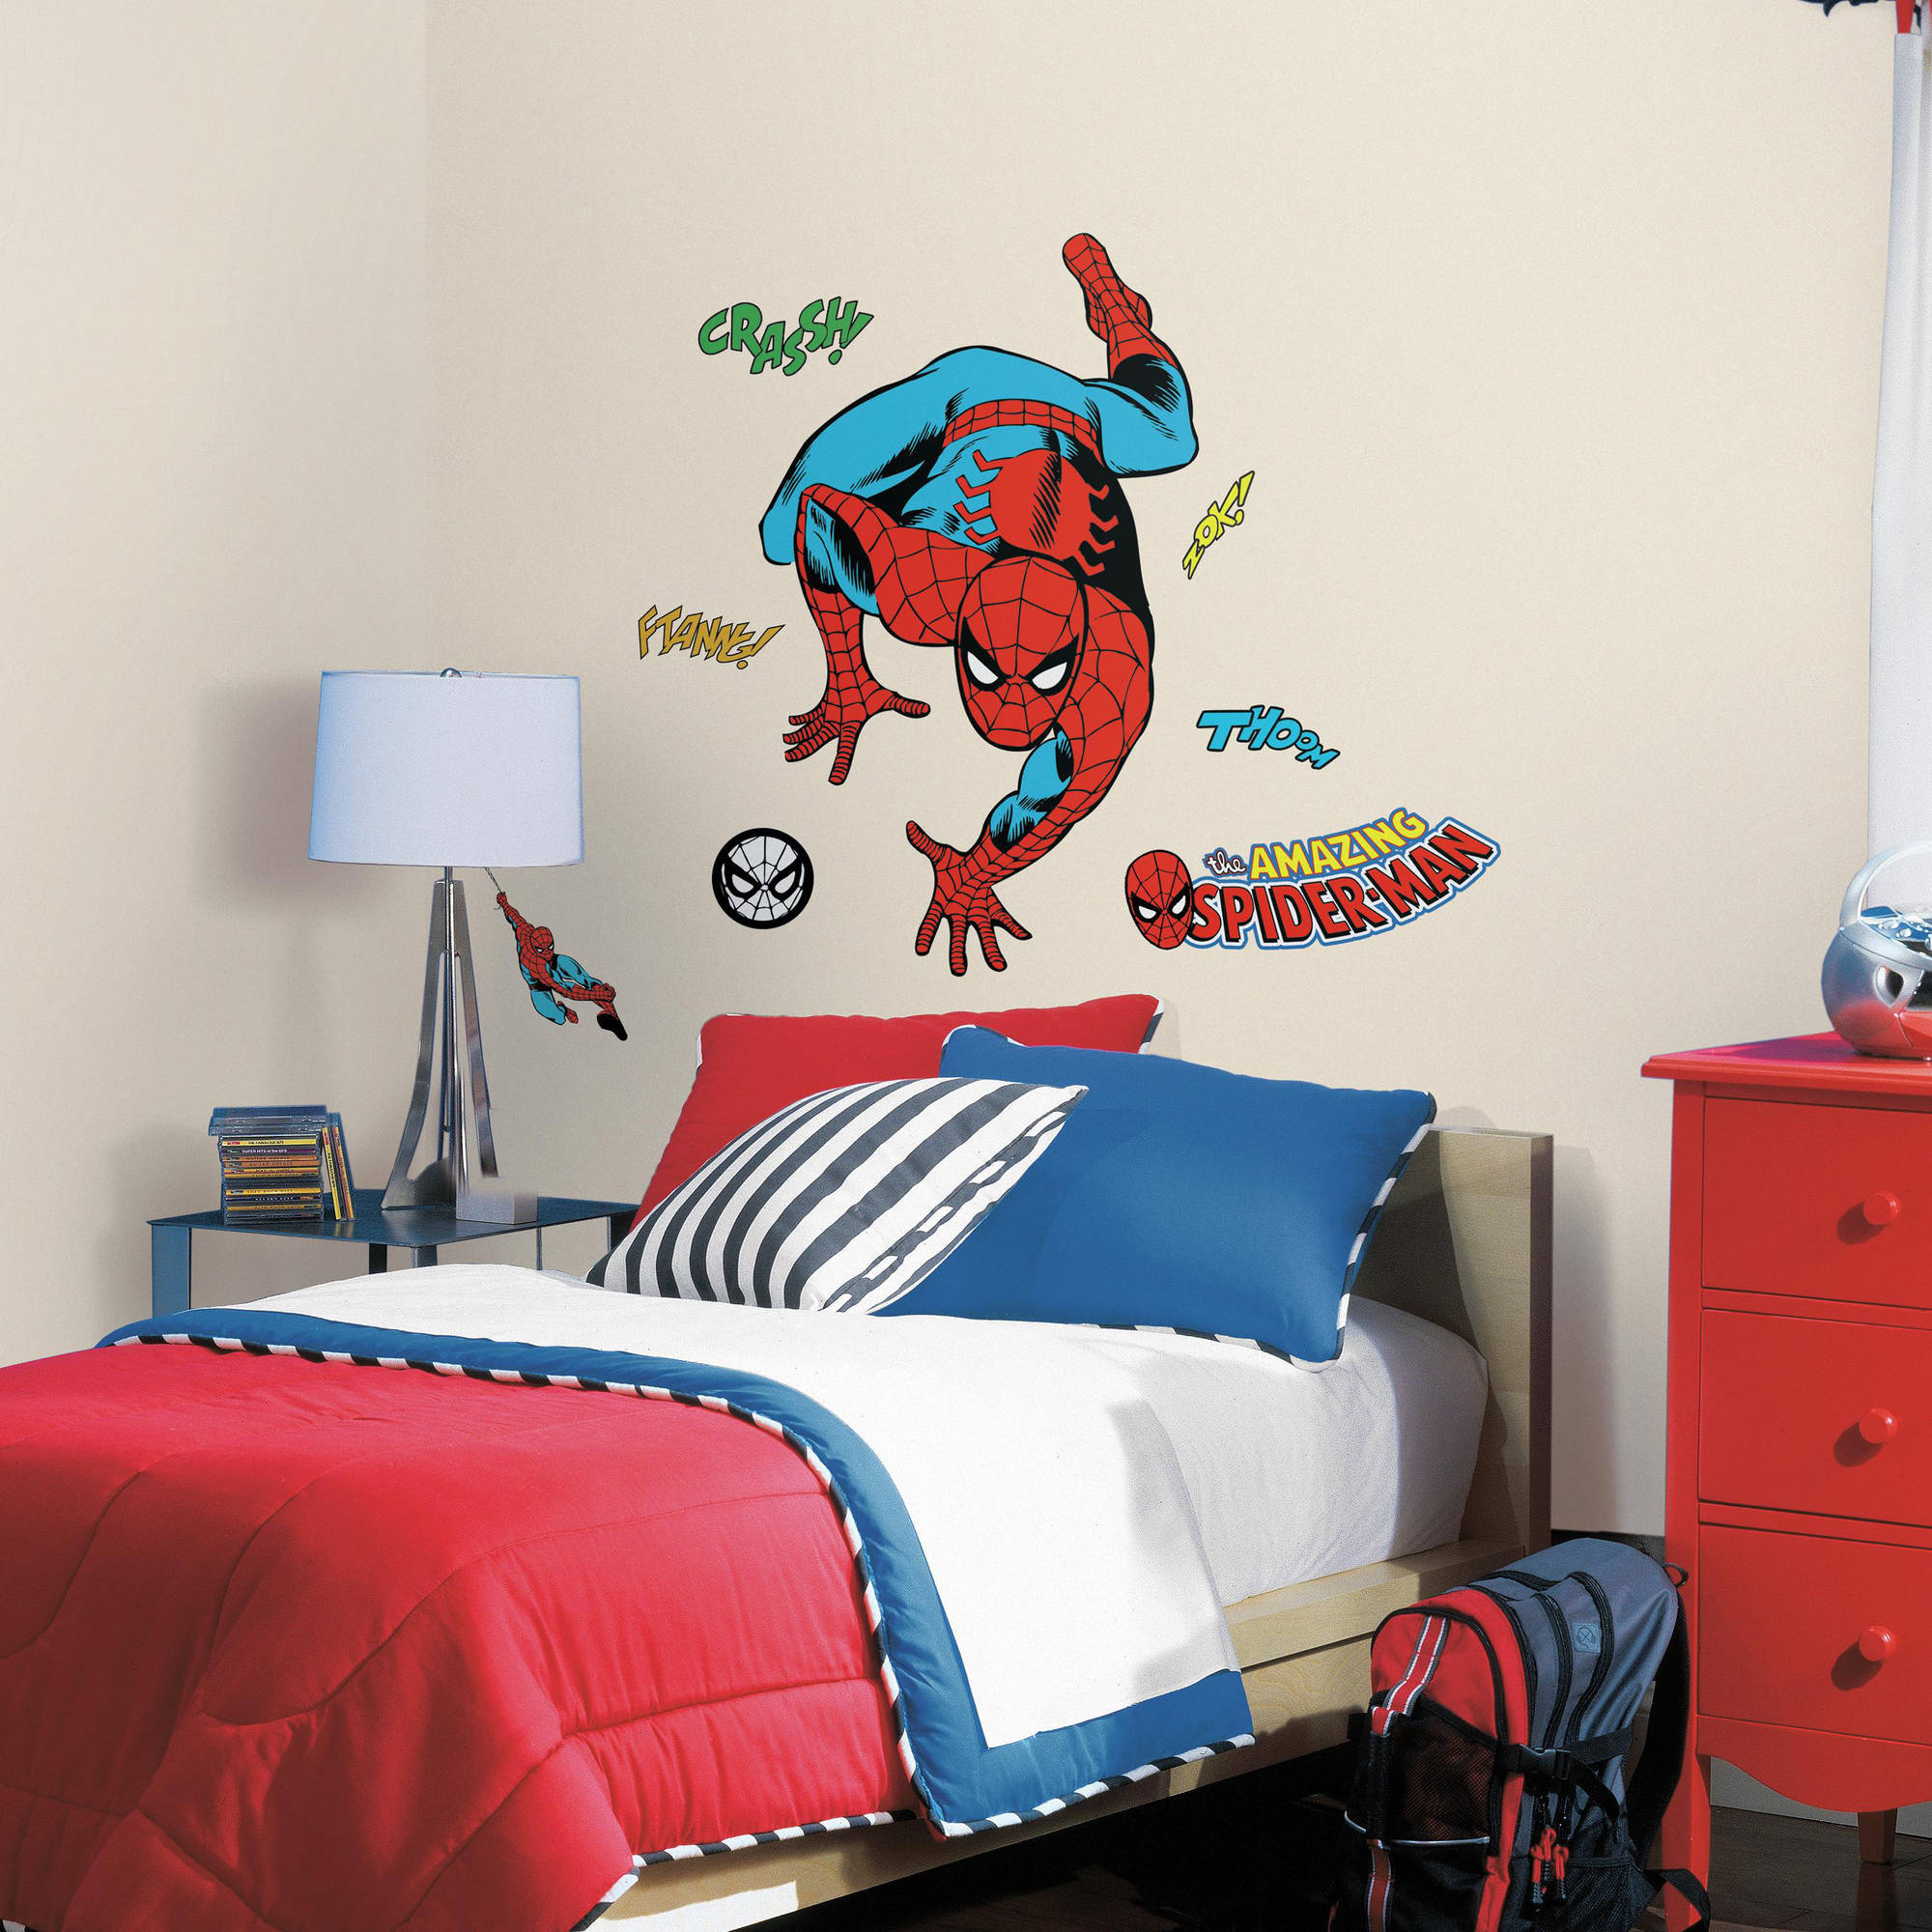 Comic Wall Decor Roommates Decor Classic Spider Man Comic Peel And Stick Wall Decals